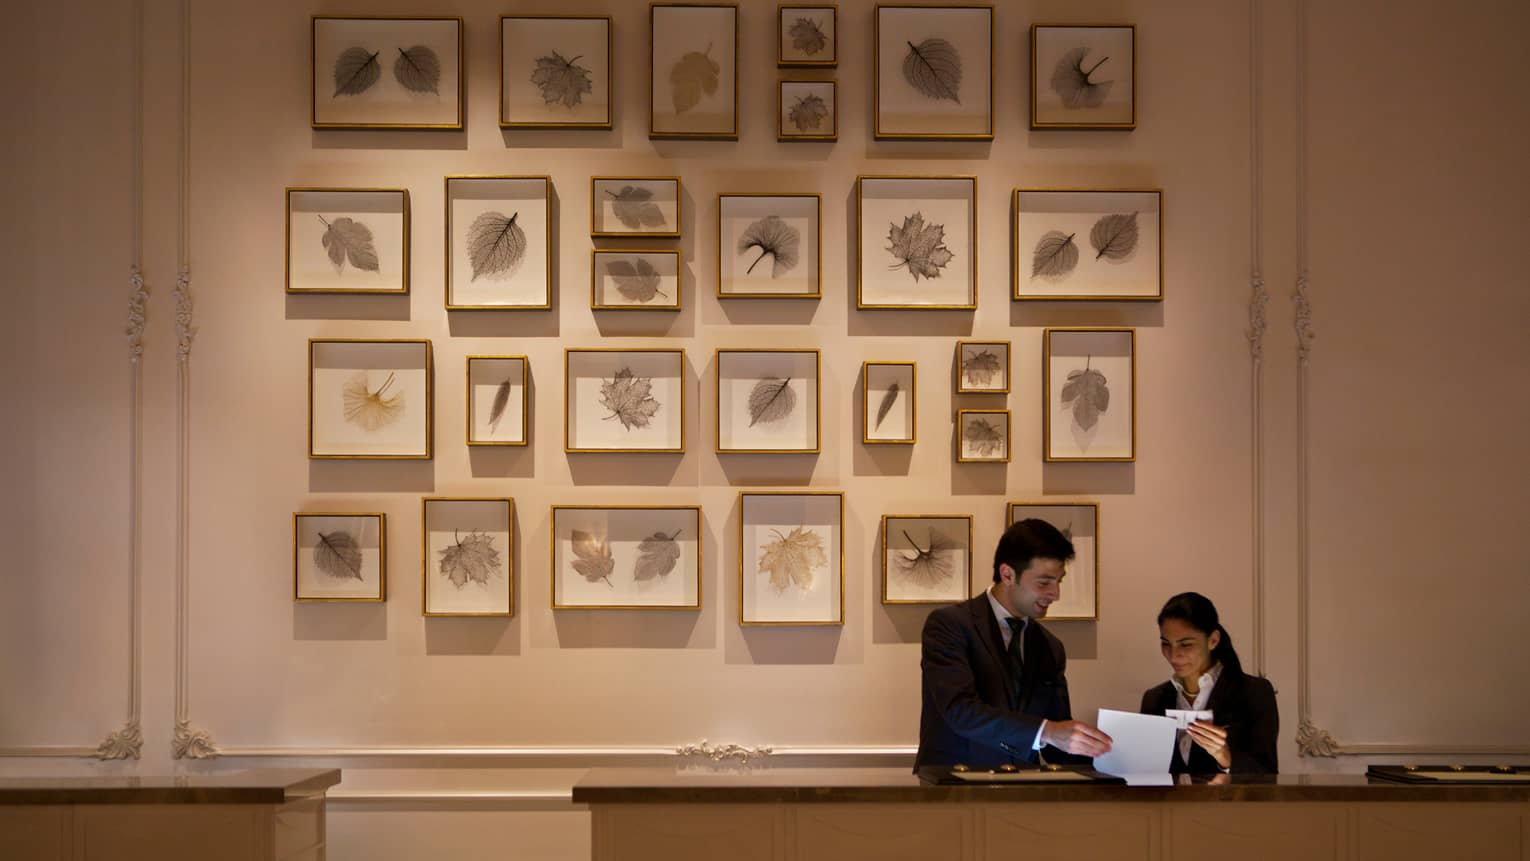 Two hotel staff look at paper at reception desk, tall wall with multiple framed leaf prints behind them